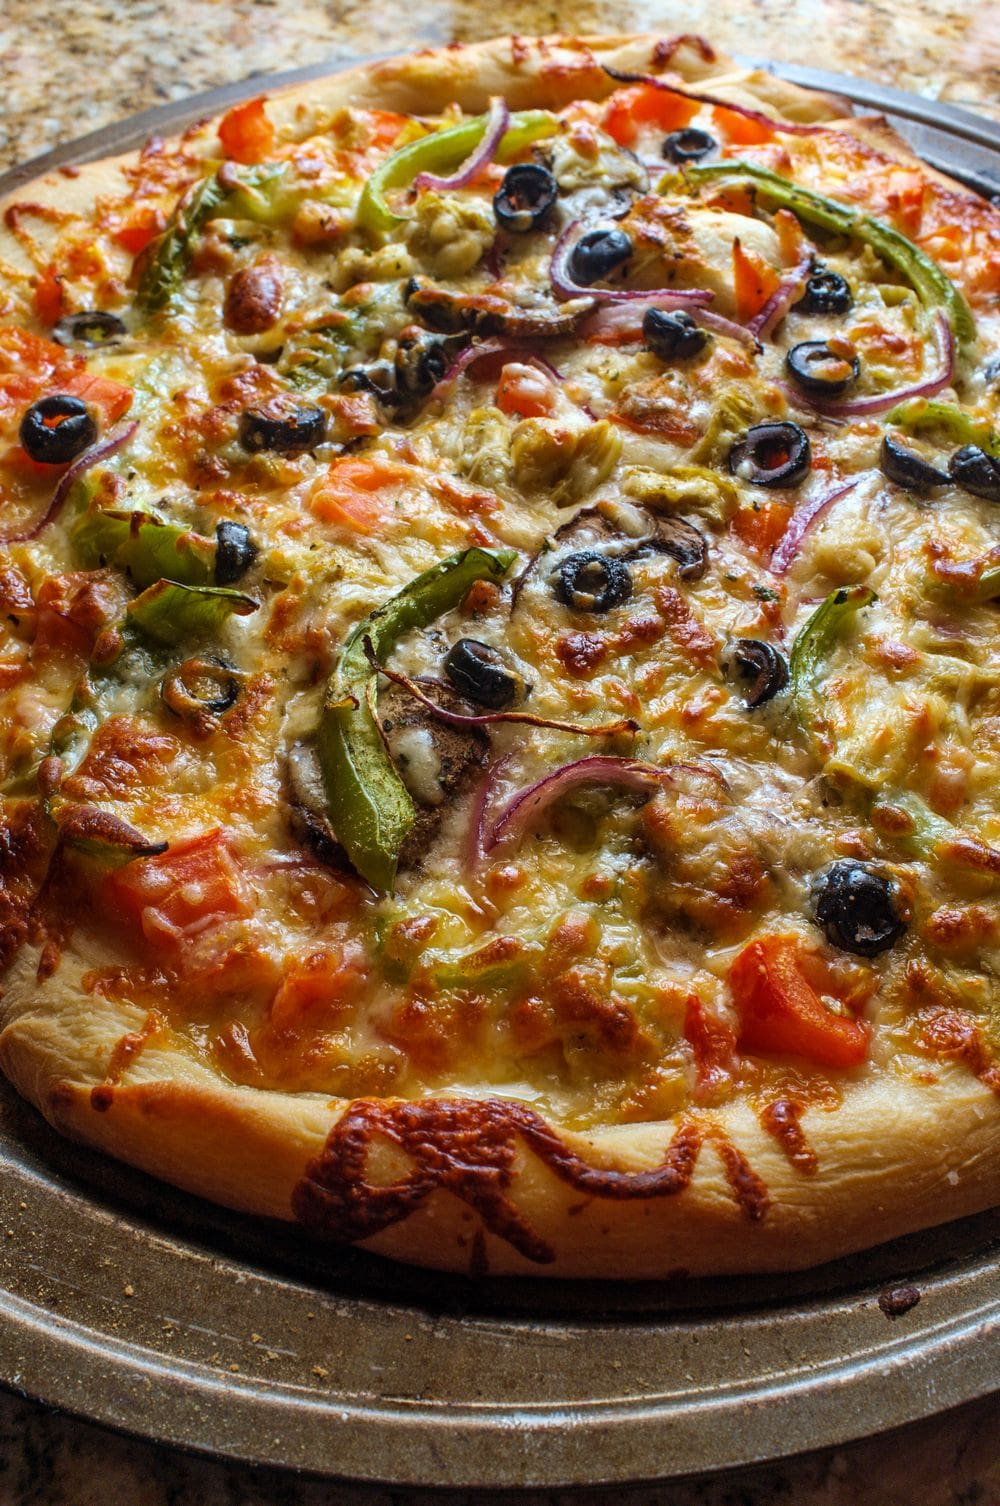 Veggie Pizza that looks tasty with lots of cheese